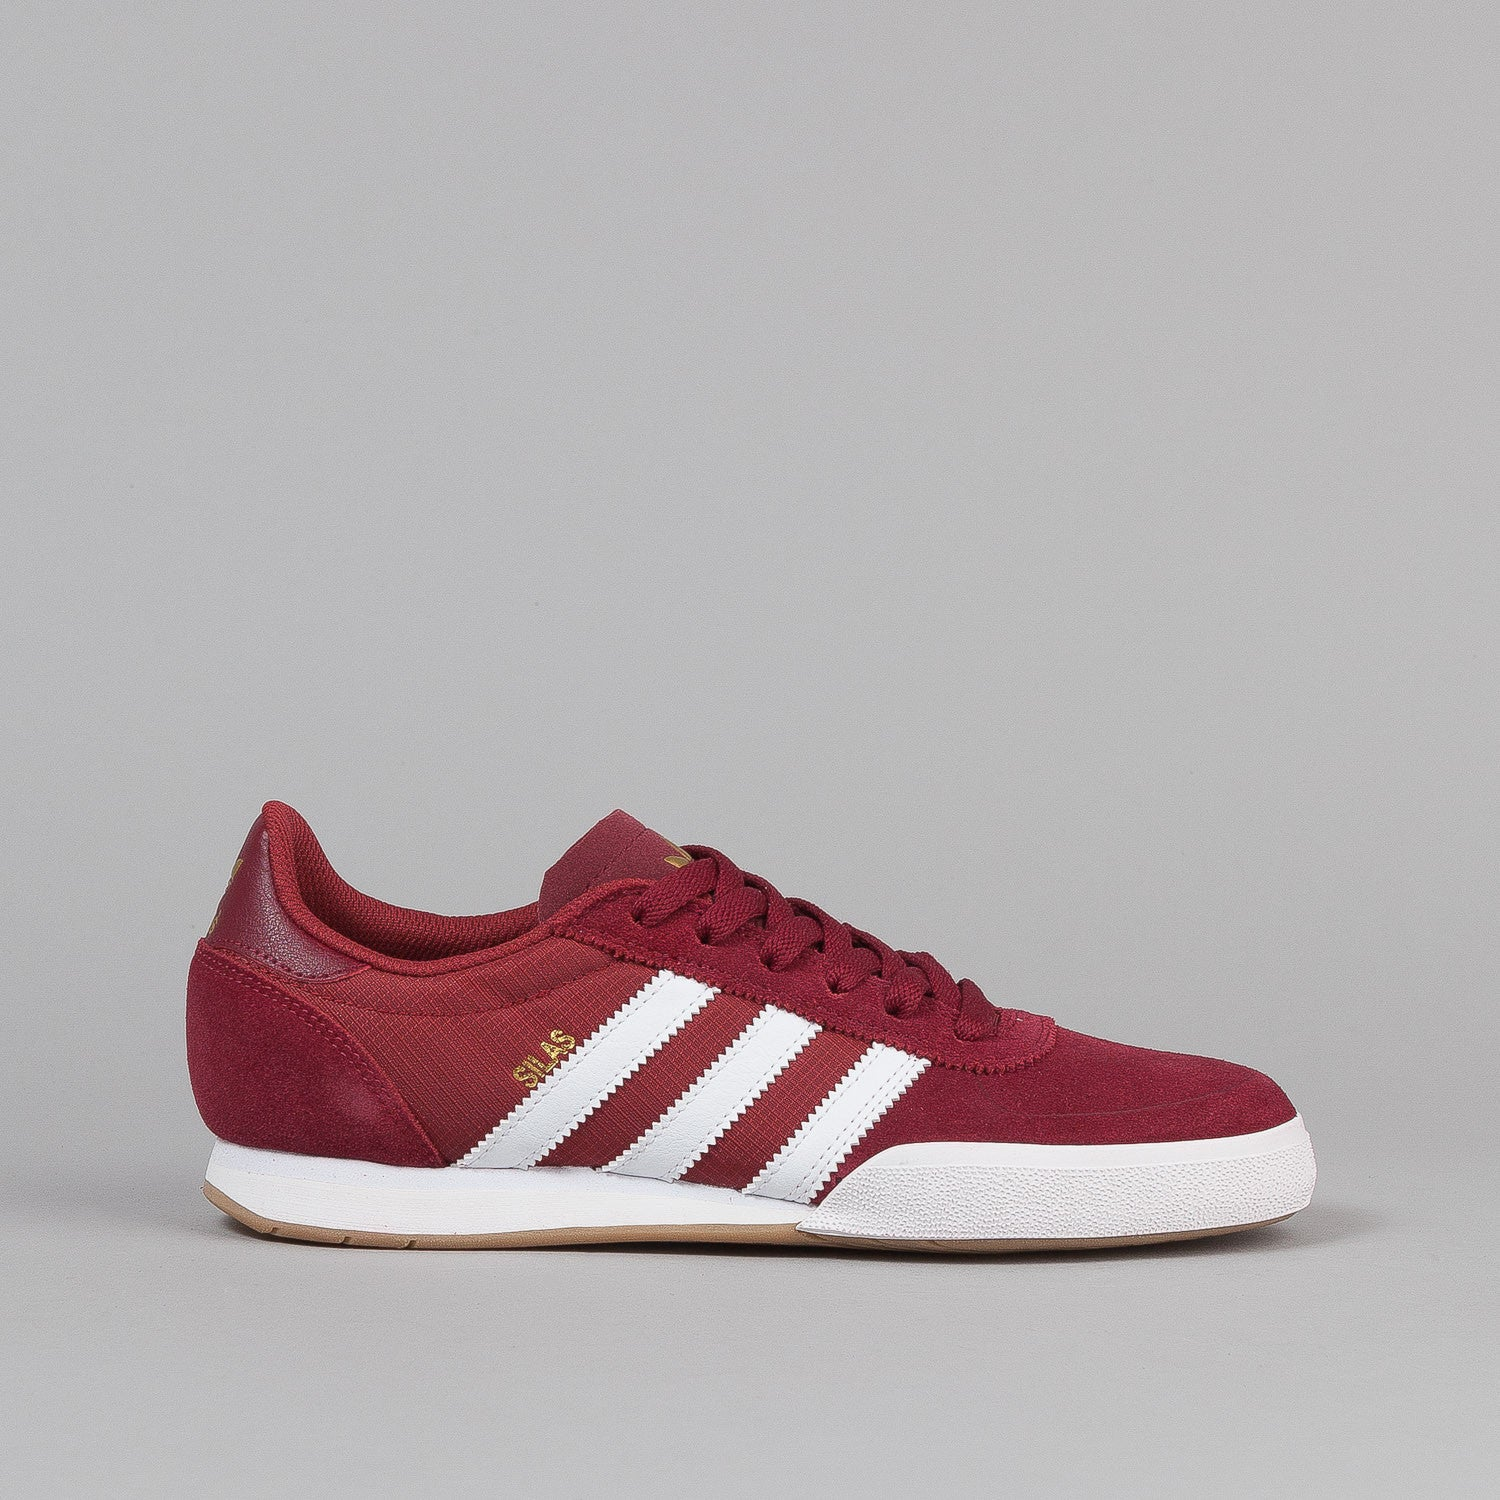 Adidas Silas SLR St Nomad Red / Running White / Metallic Gold